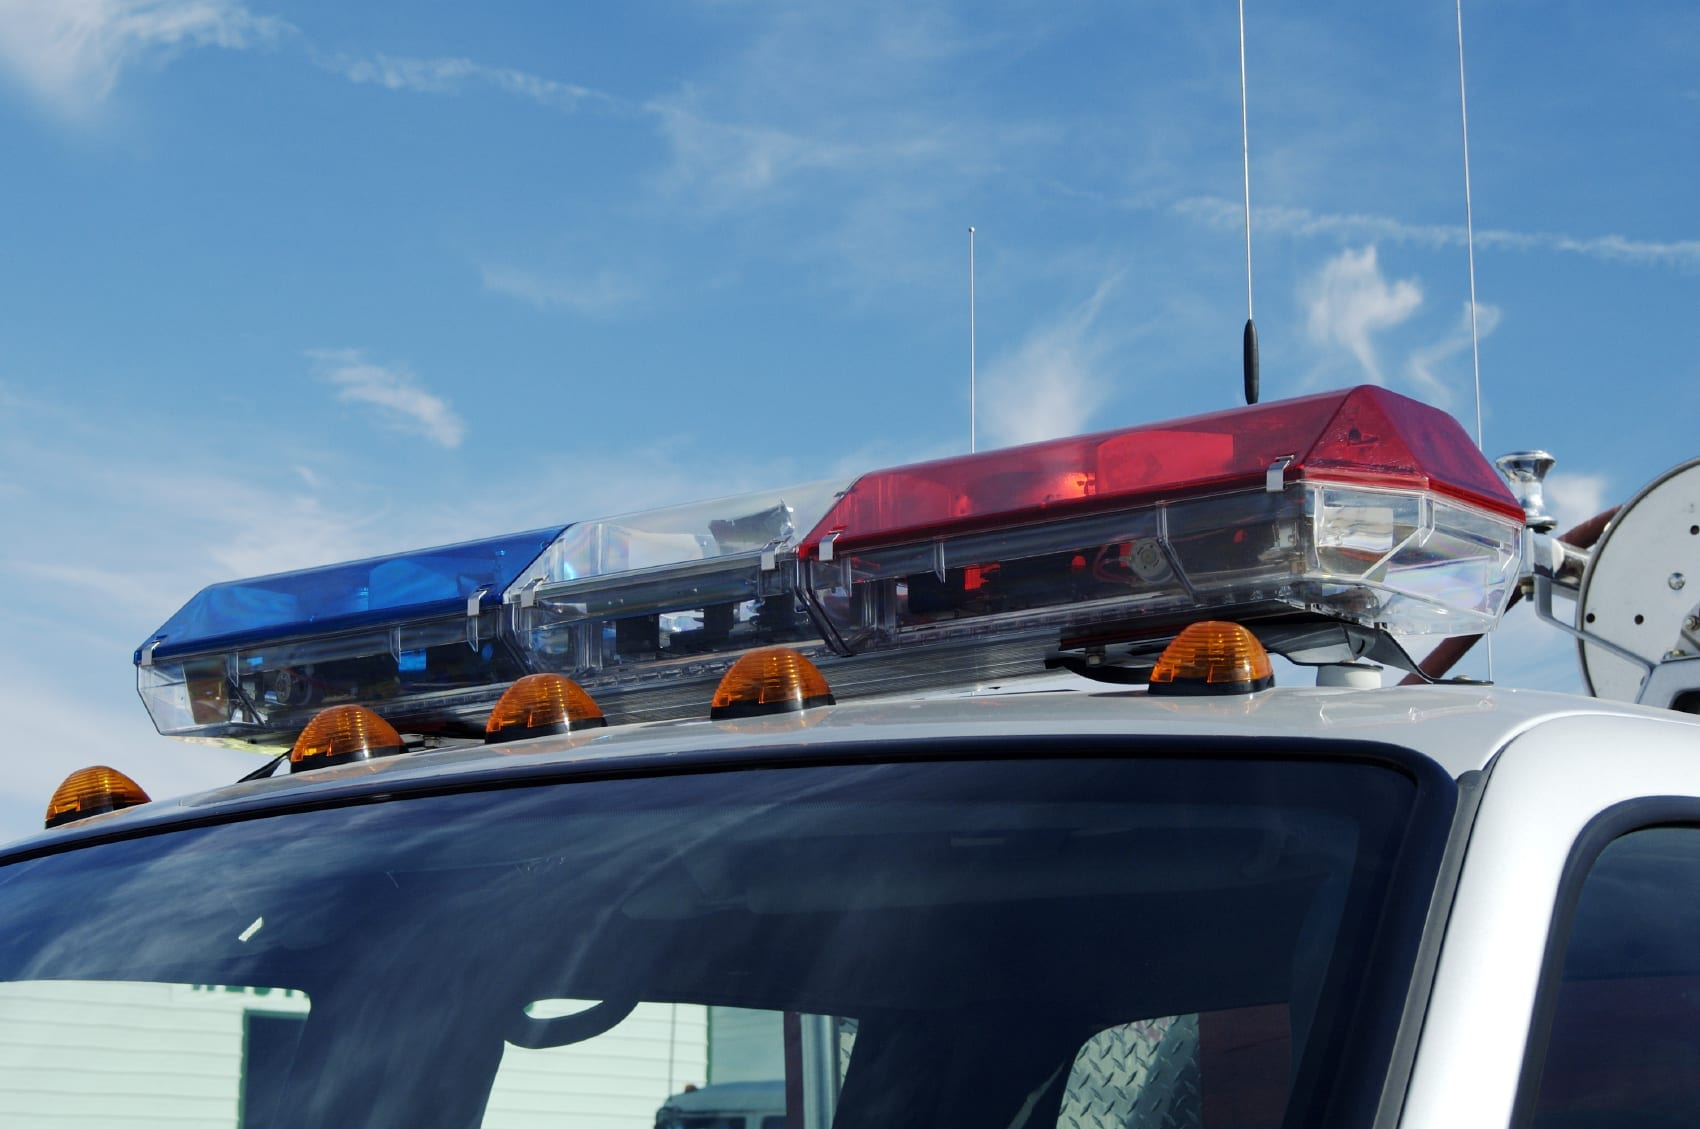 Parked Police Squad Car Stock Photo